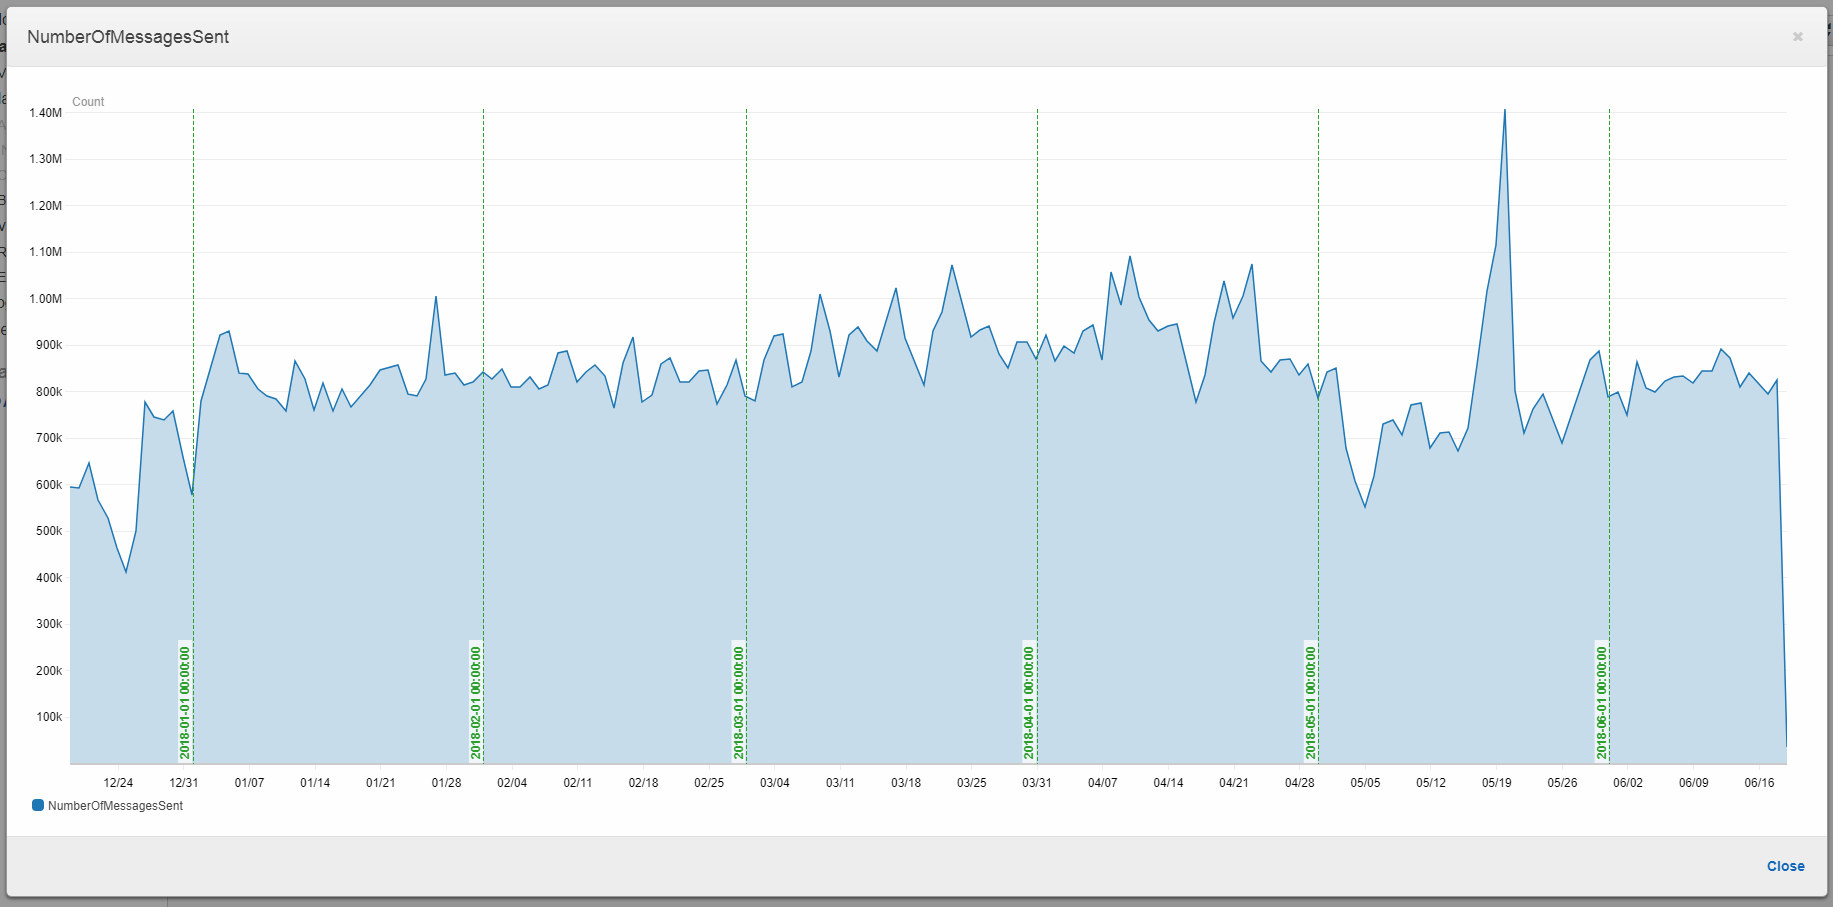 CloudWatch metrics showing how busy the image processing is